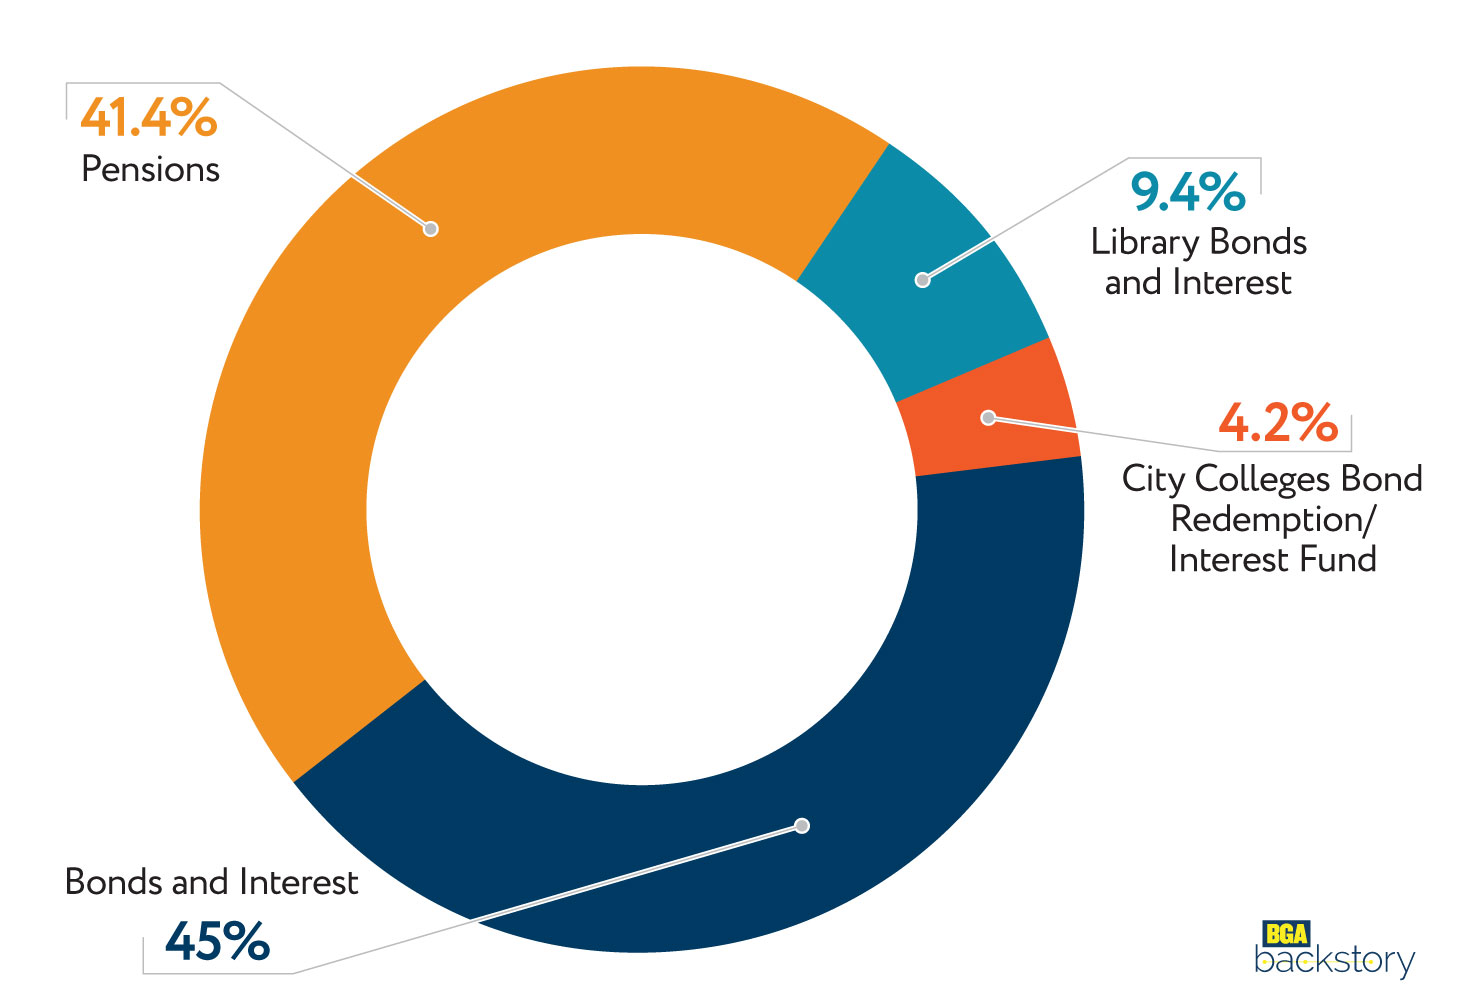 Distribution-of-City-of-Chicago-FY2015-Property-Tax-Revenues.jpg